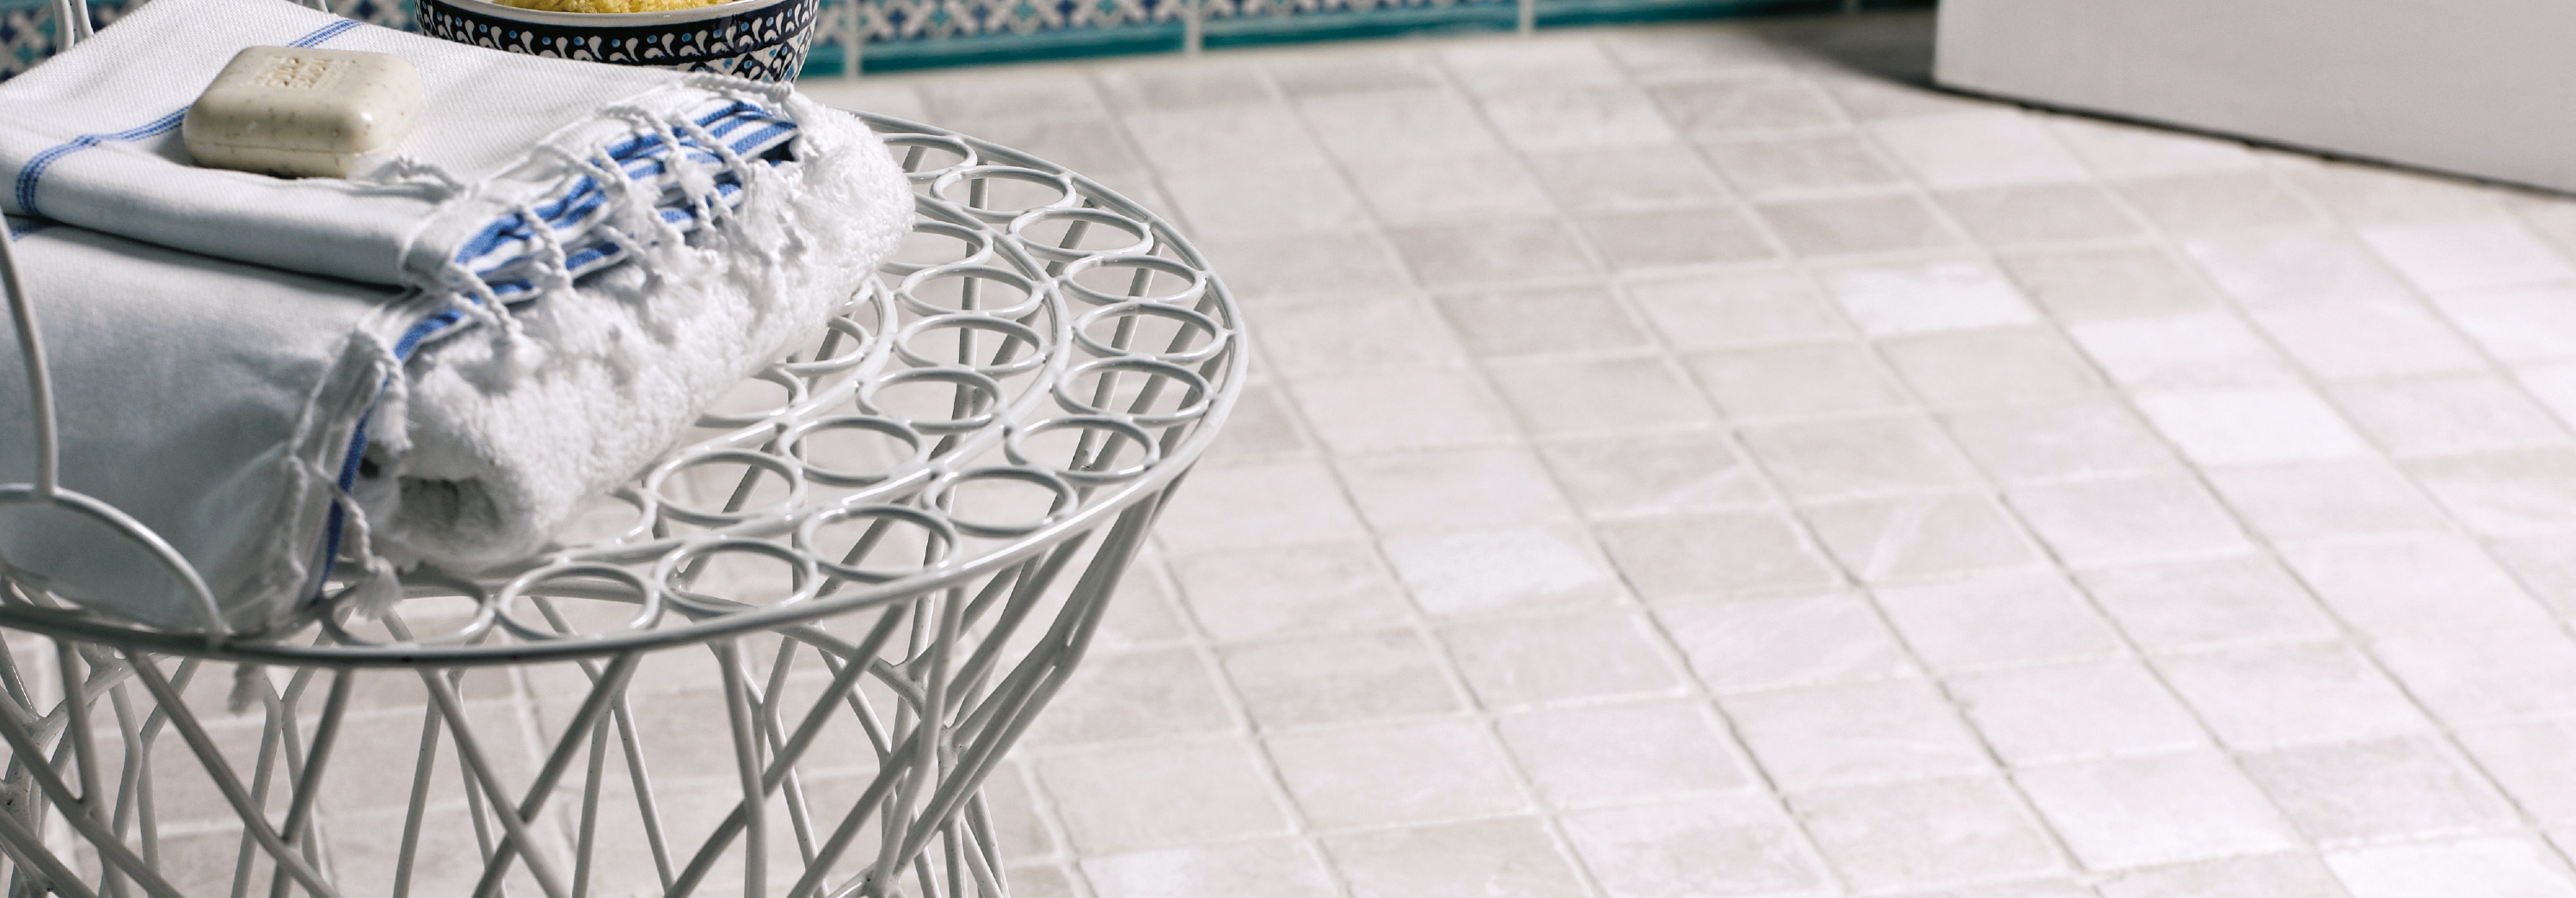 venetian stone collection of limstone mosaics from fired earth